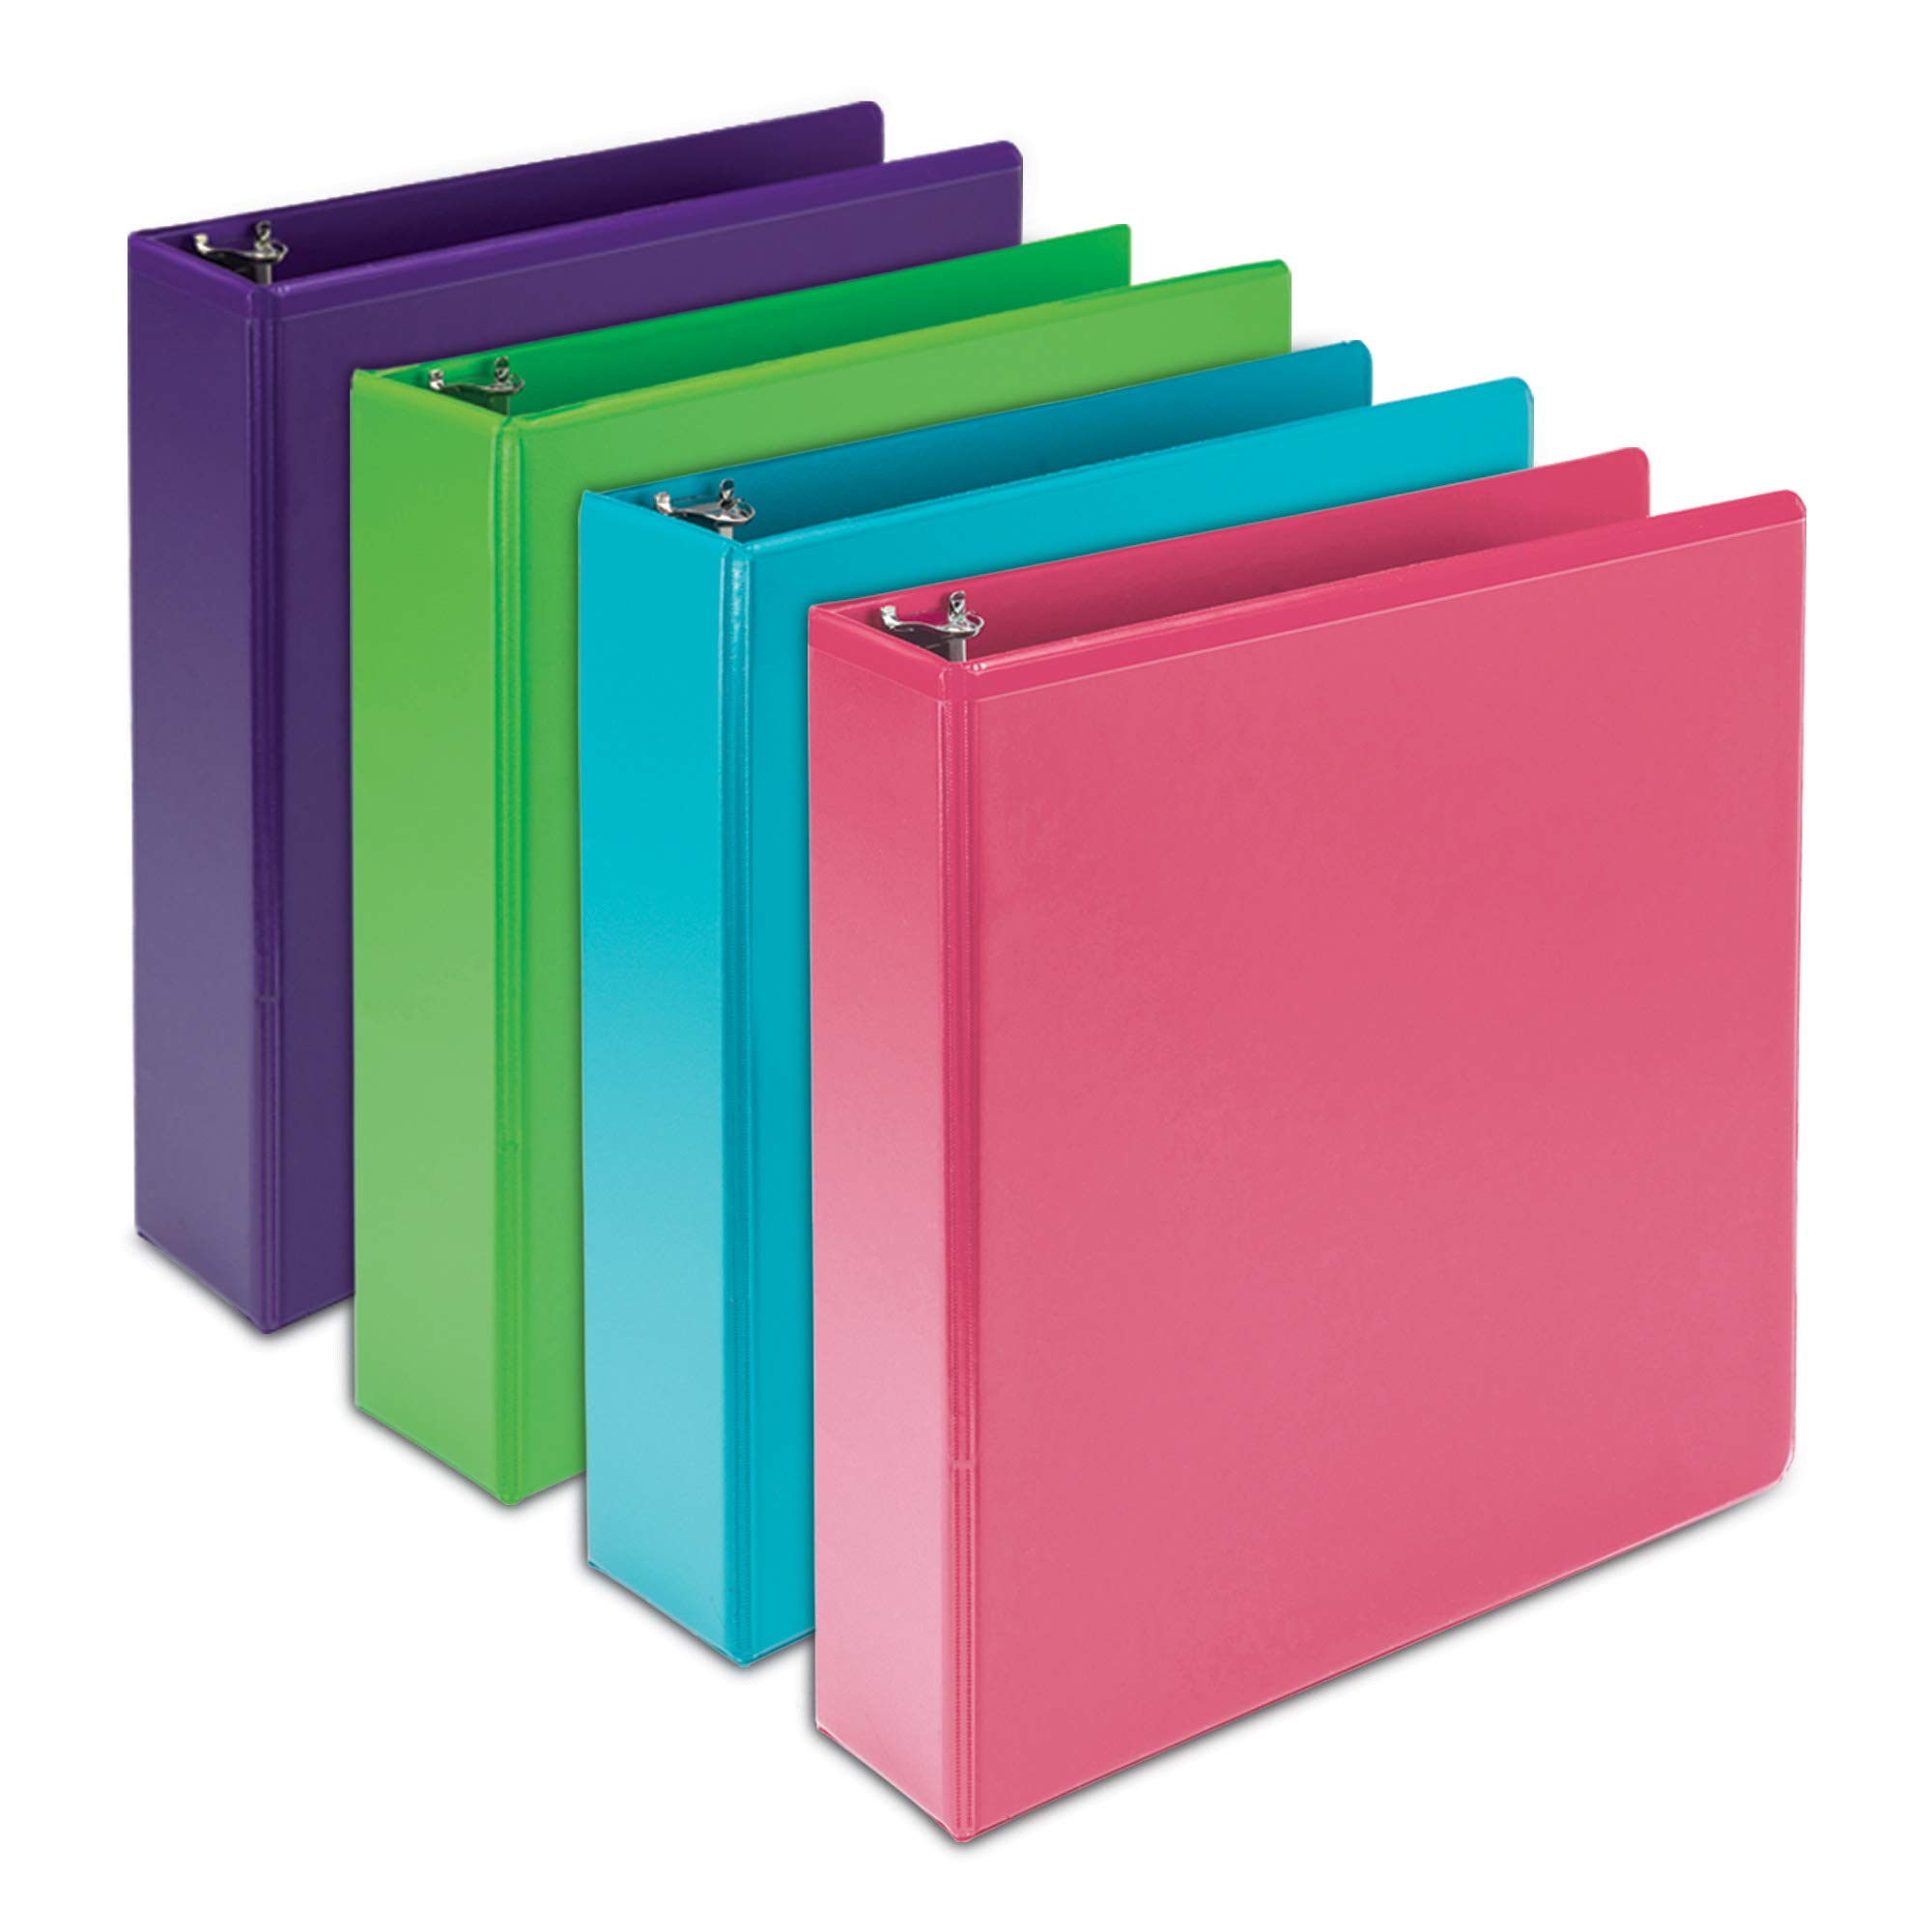 Samsill Earth's Choice Biobased Durable 3 Ring Binders, Fashion Clear View 2 Inch Binders, Up to 25% Plant Based Plastic, Assorted 4 Pack by Samsill